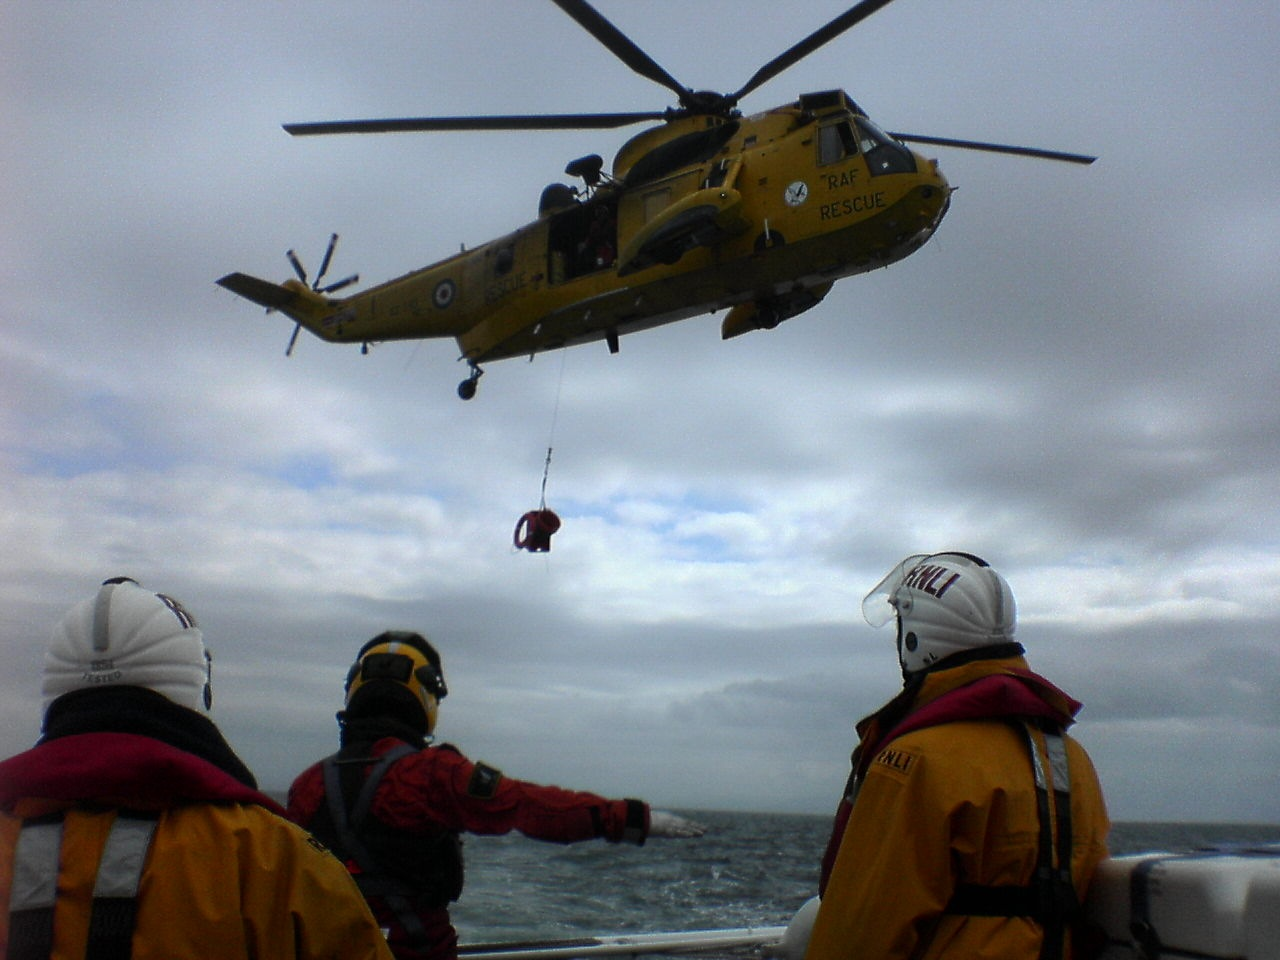 WORKING WITH RESCUE 137 by kenneth campbell